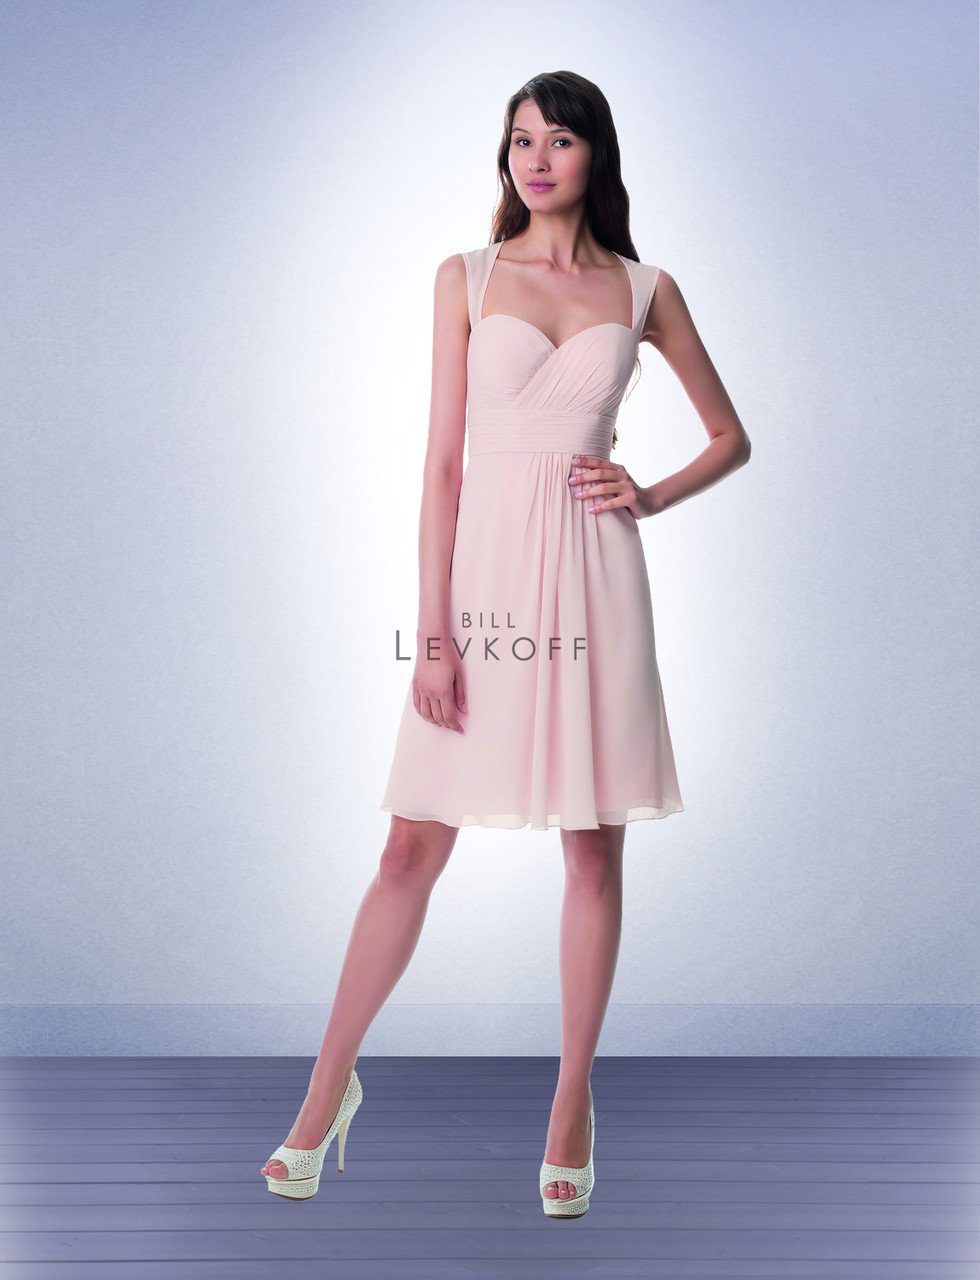 3e01c8b041915 Designer Bill Levkoff Bridesmaid Dress Style 973 - Chiffon Dress